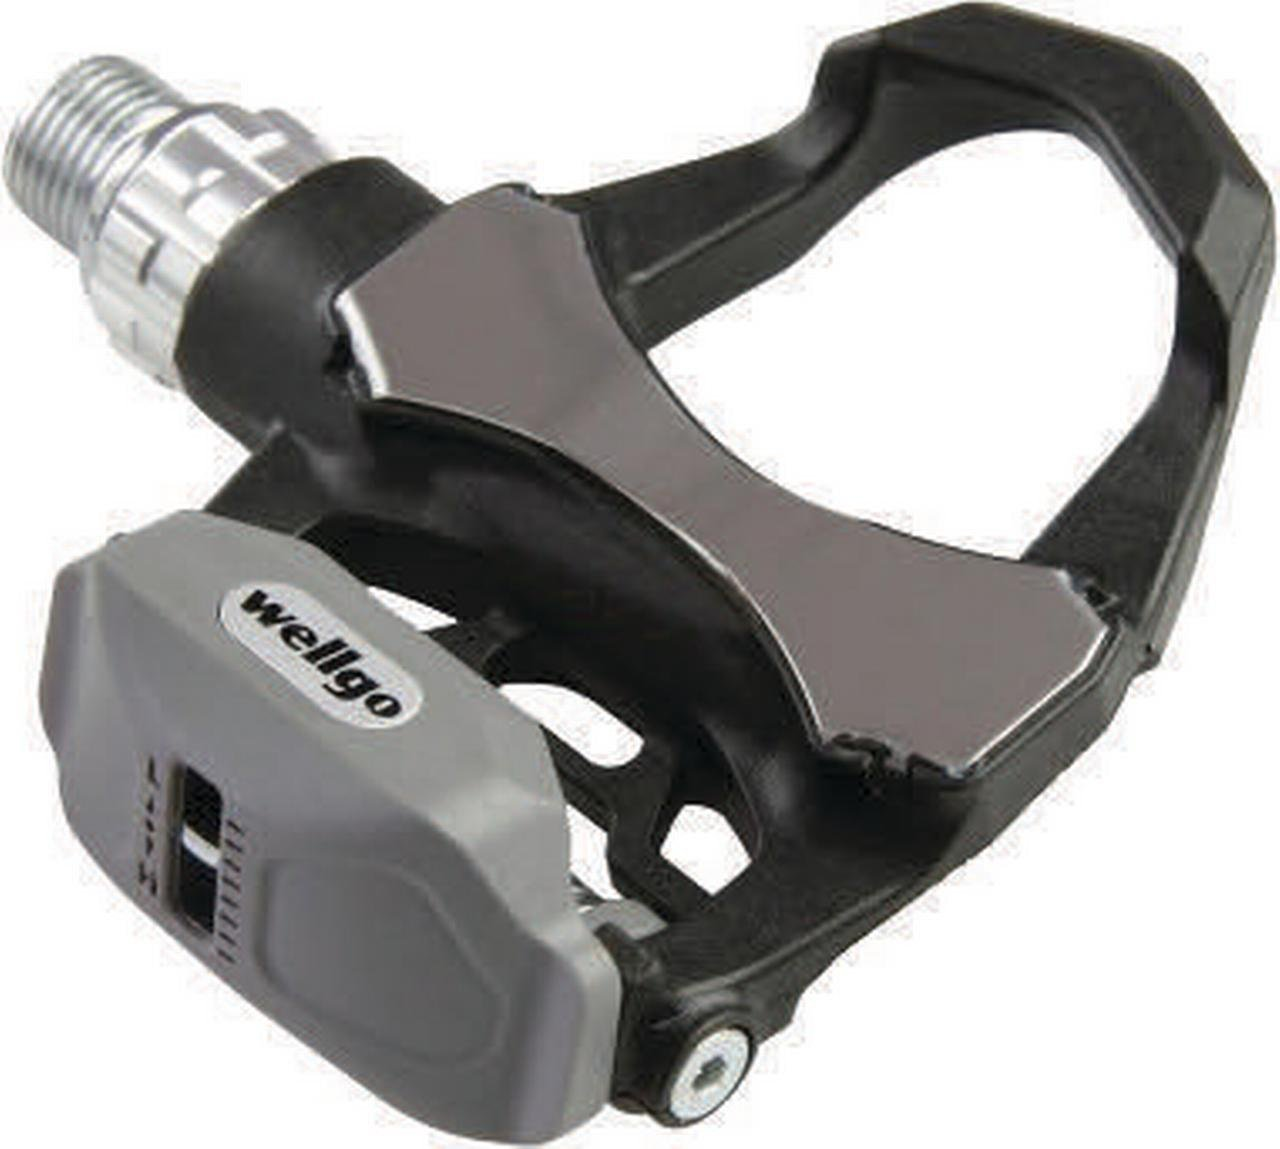 Wellgo R168 Keo Sealed Pedal Clipless PD0196